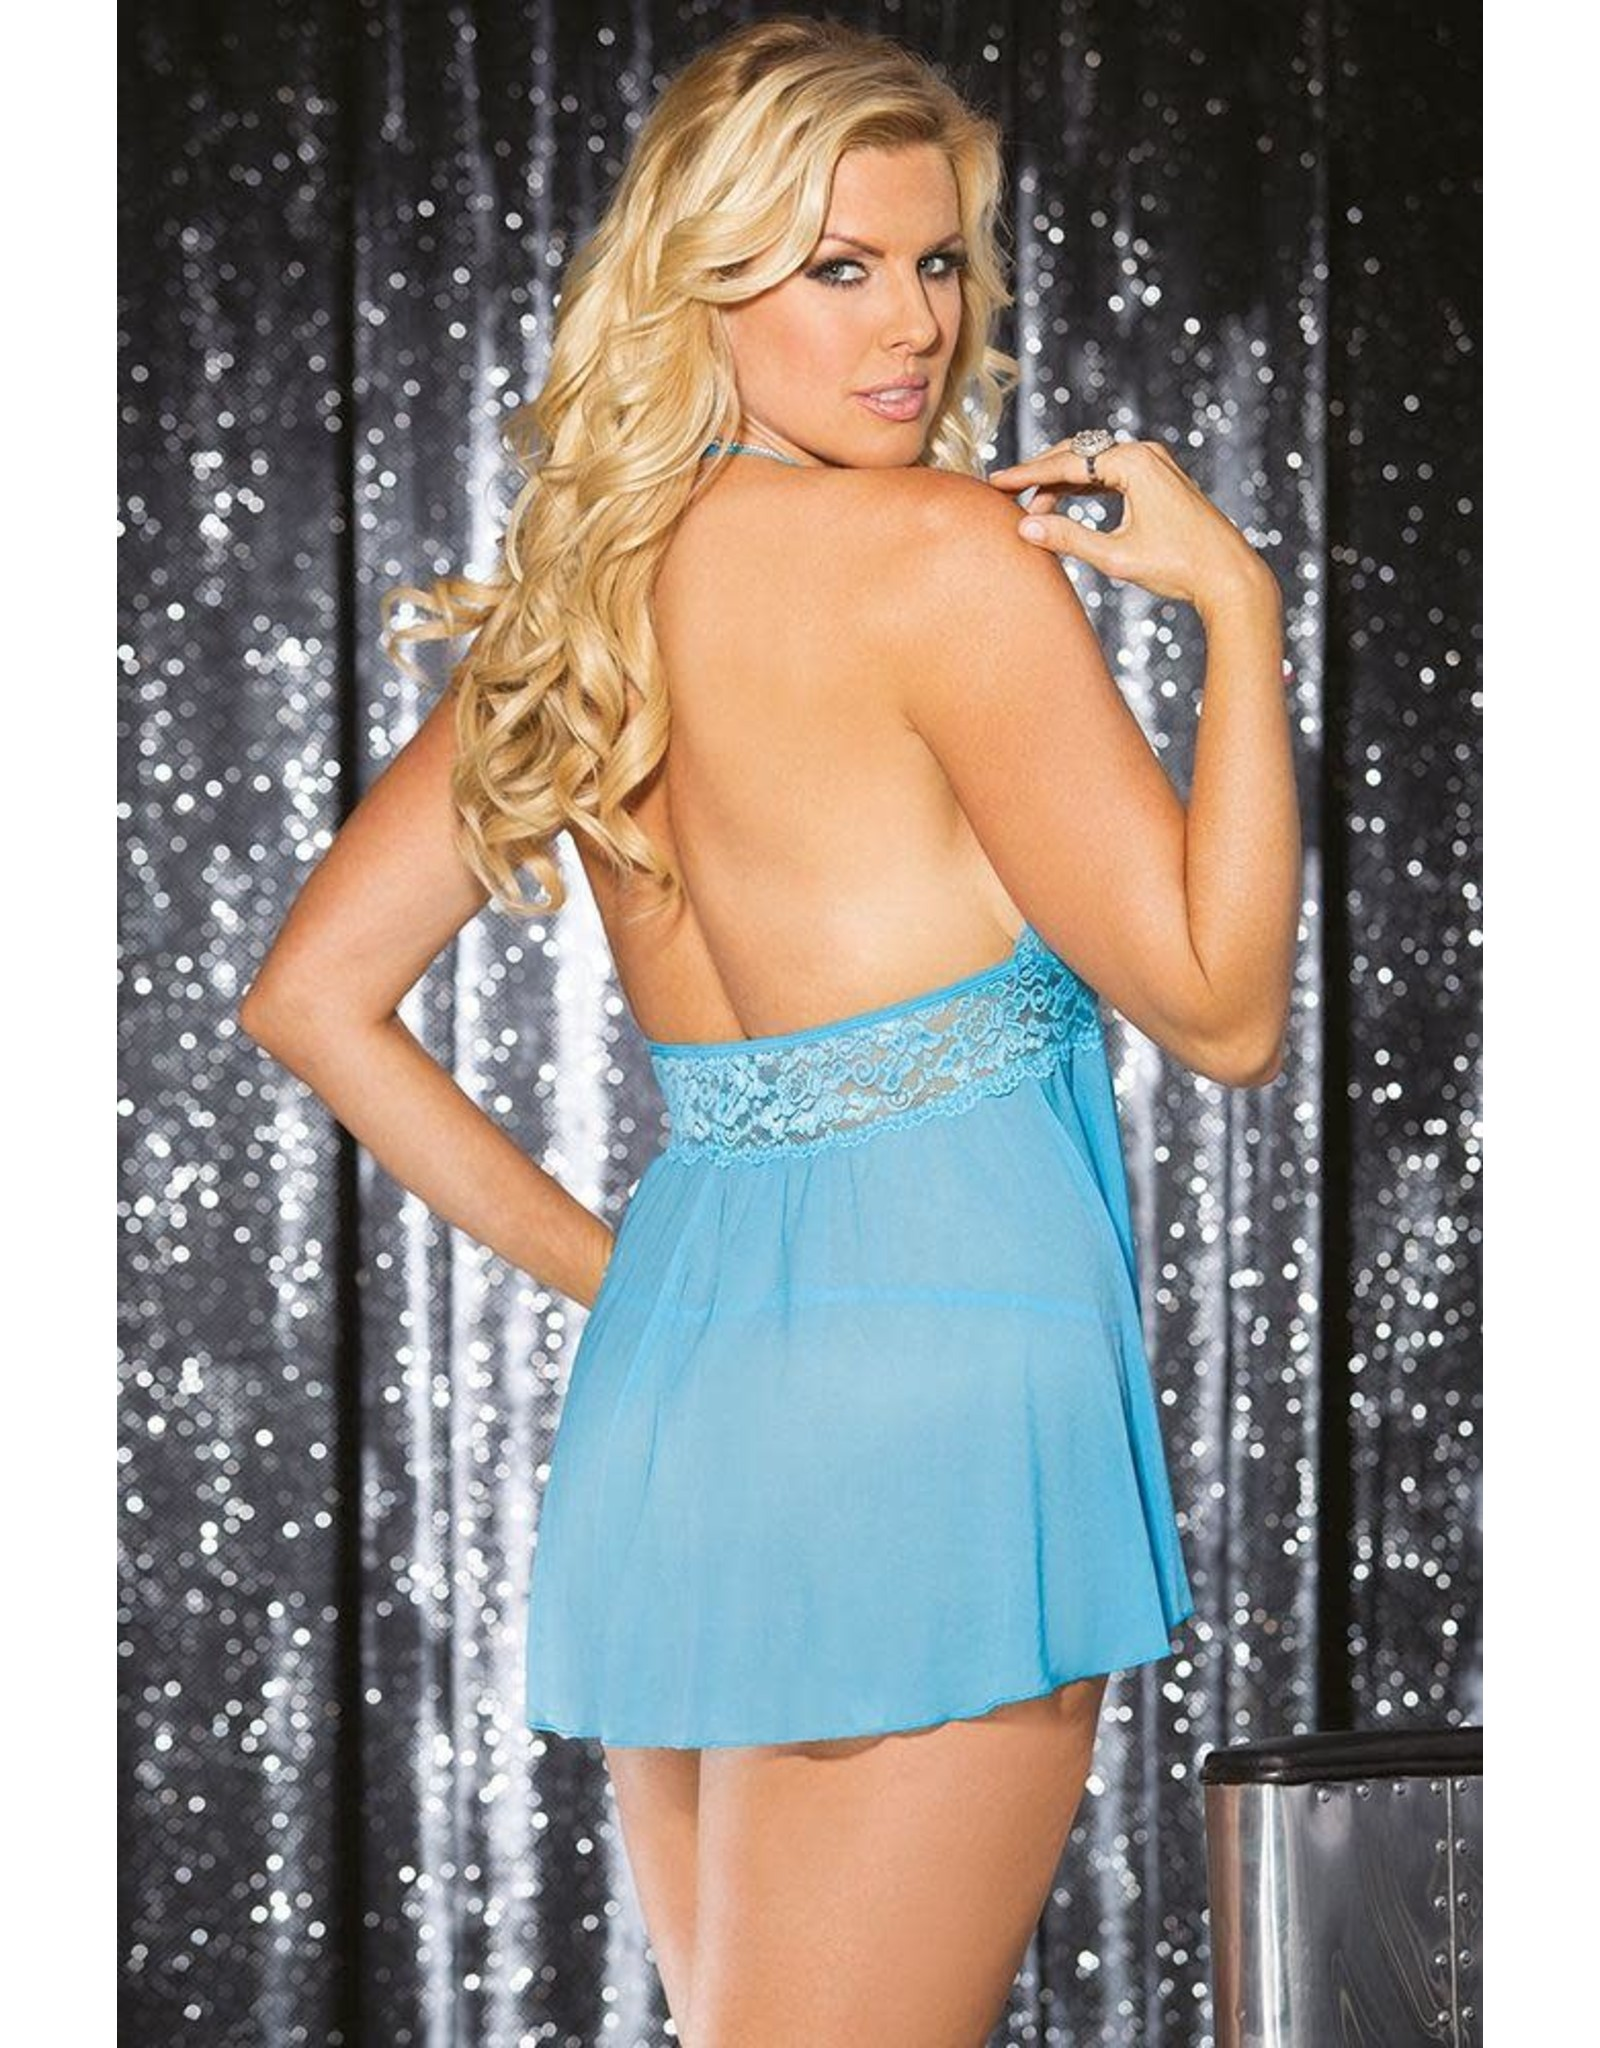 Stretch Mesh and Lace Babydoll with Bow - Turquoise - OSXL